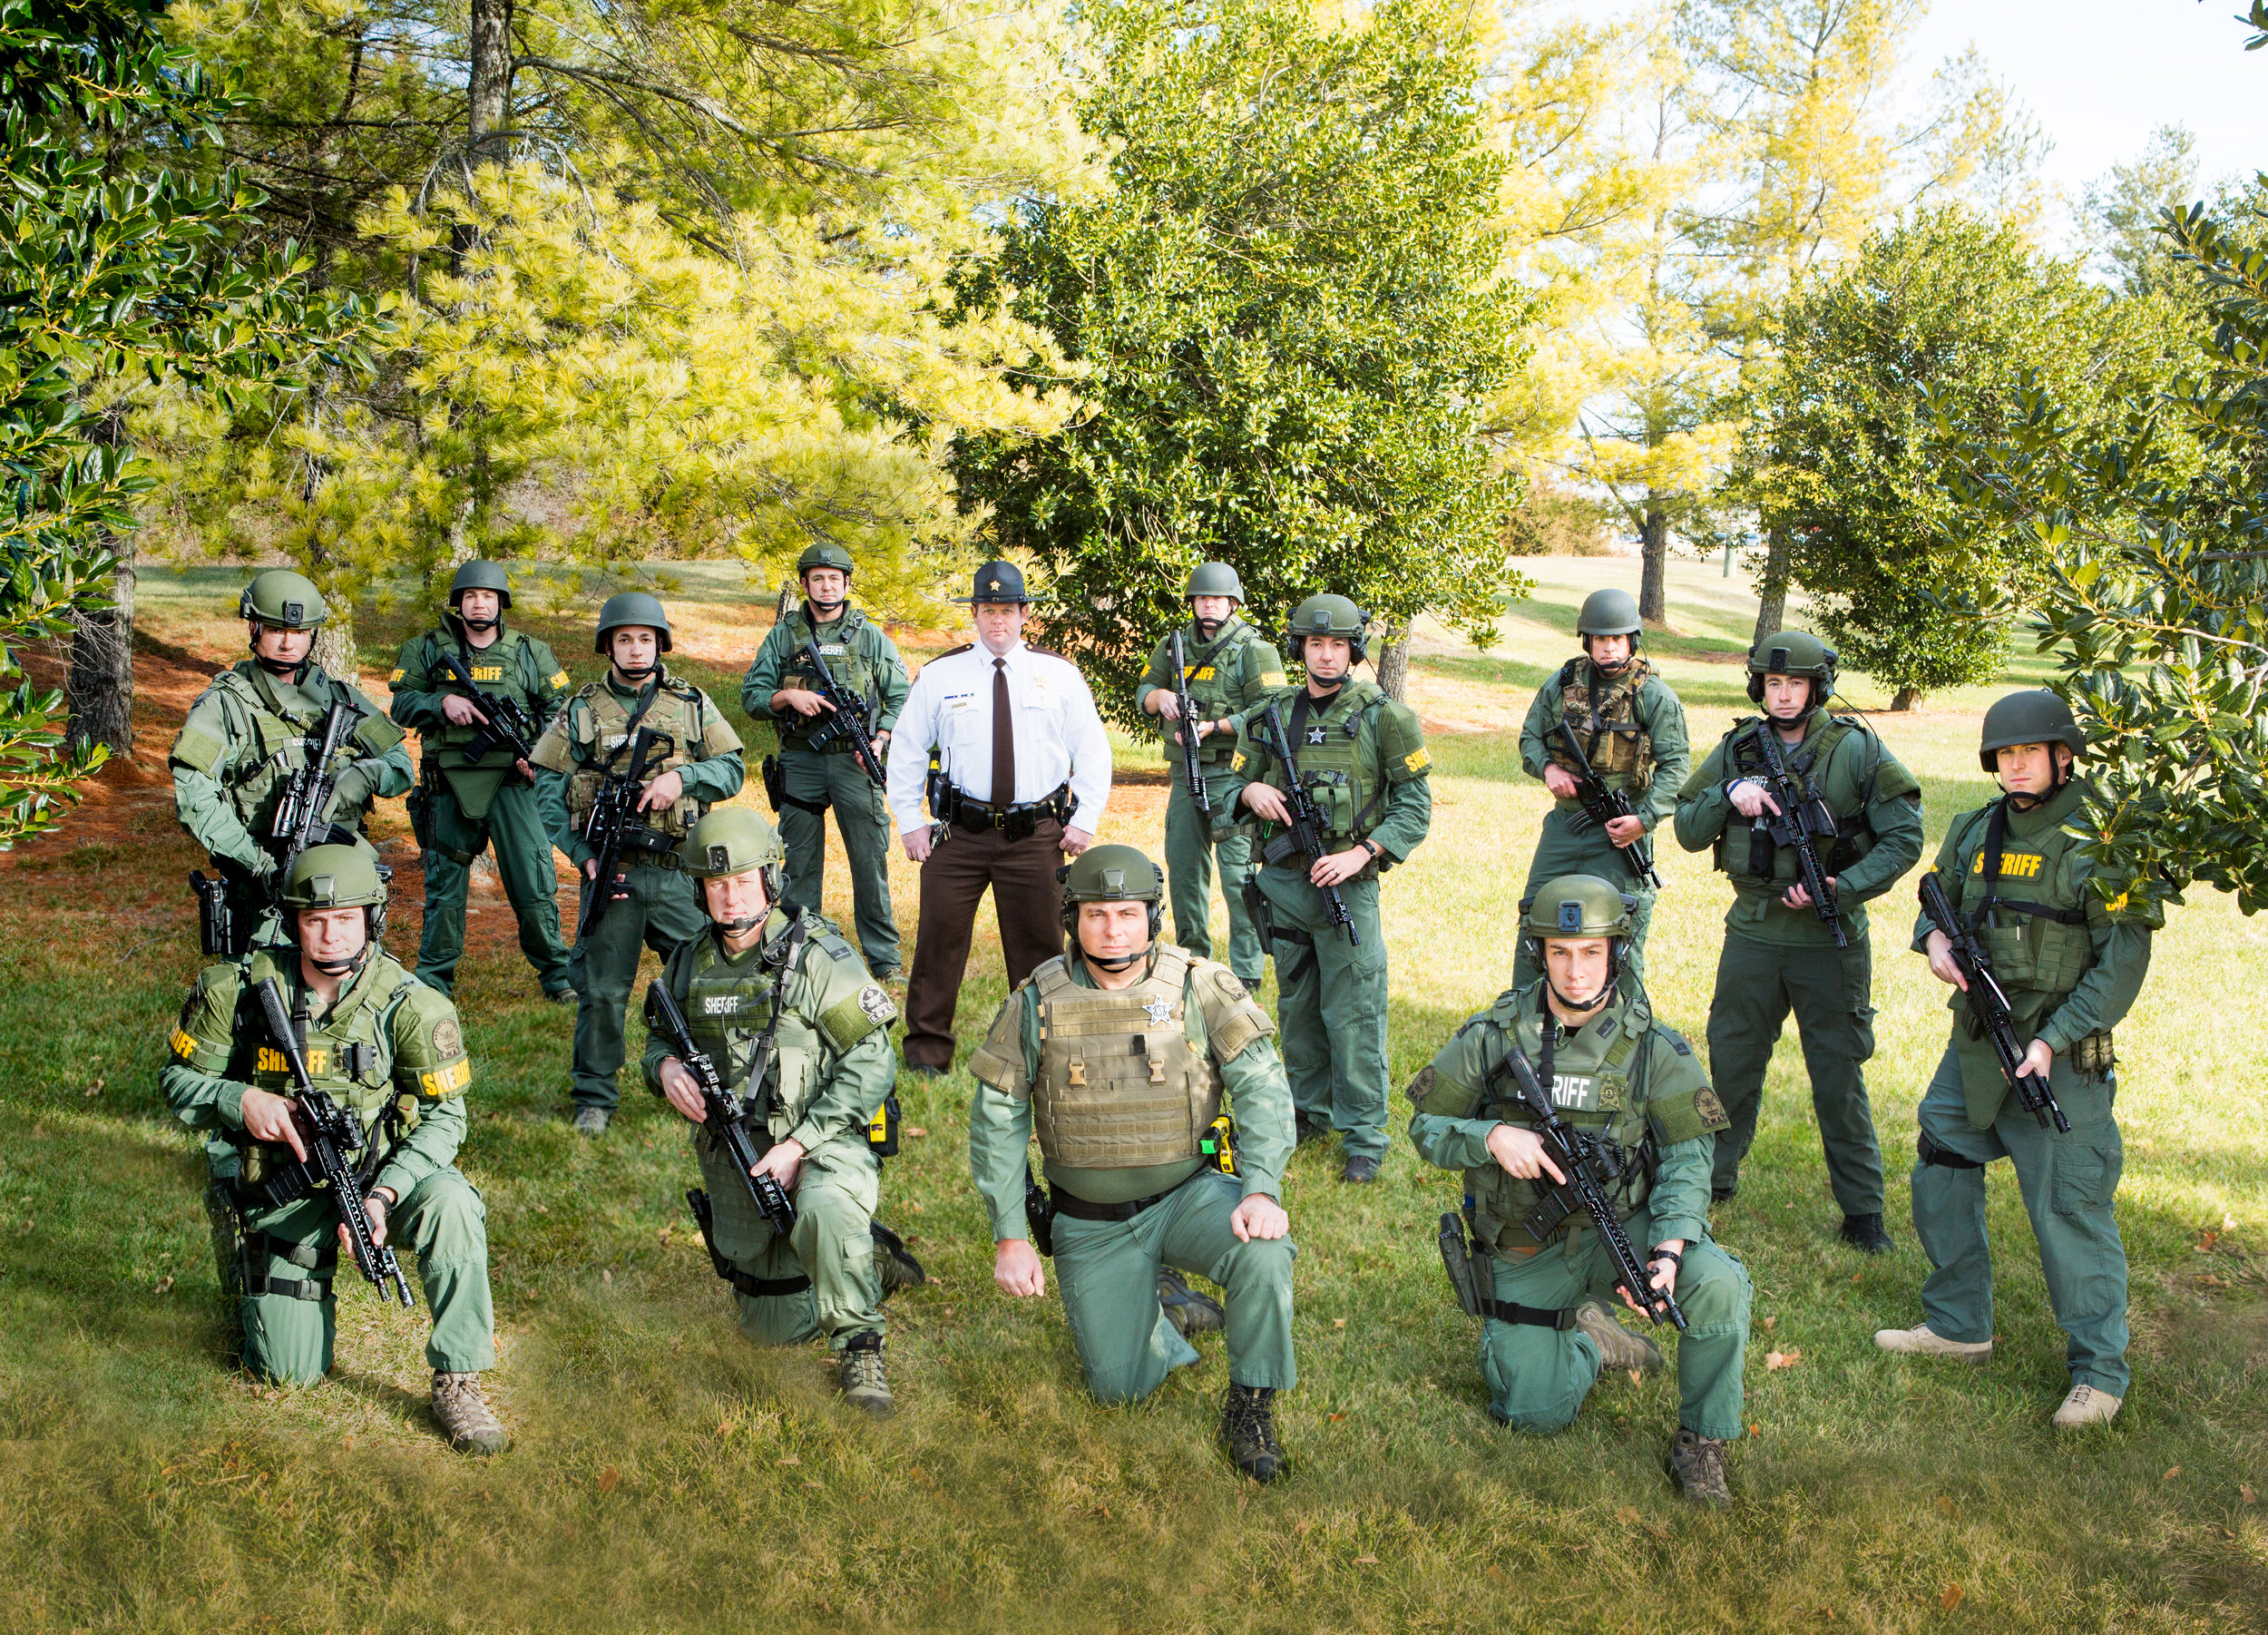 SWAT Tactical Team Aug Co 2017-0701-R-Edit.jpg